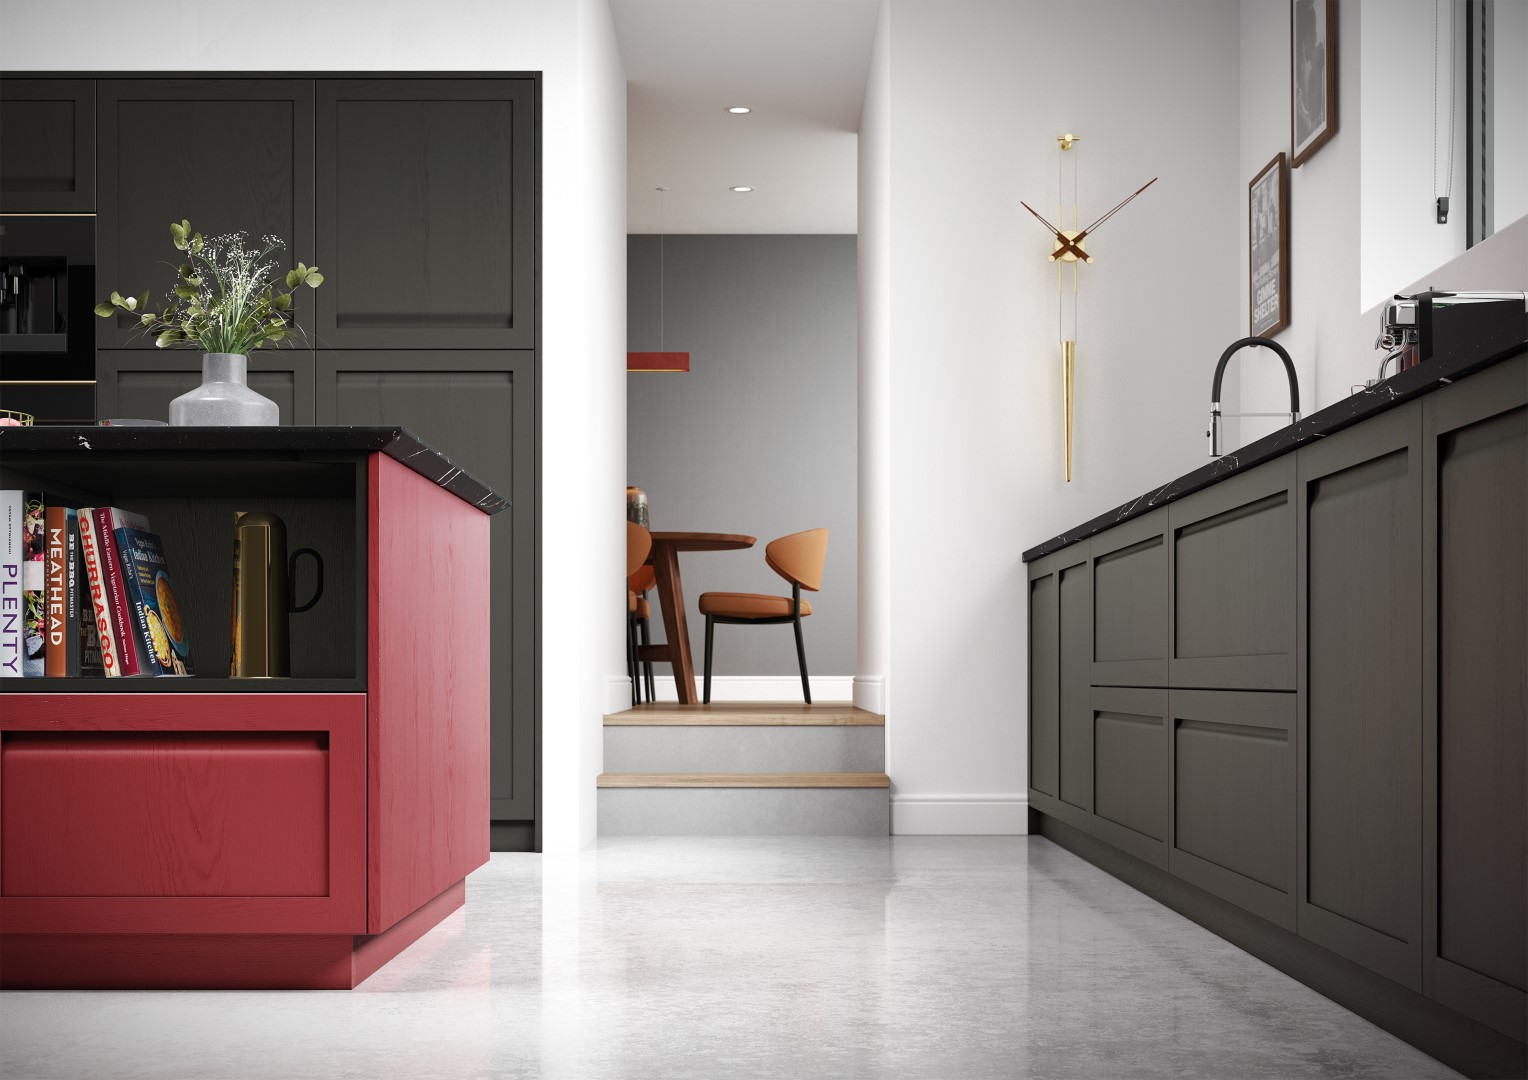 Harborne Graphite and Chicory Red - Kitchen Design - Alan Kelly Kitchens - Waterford - 3